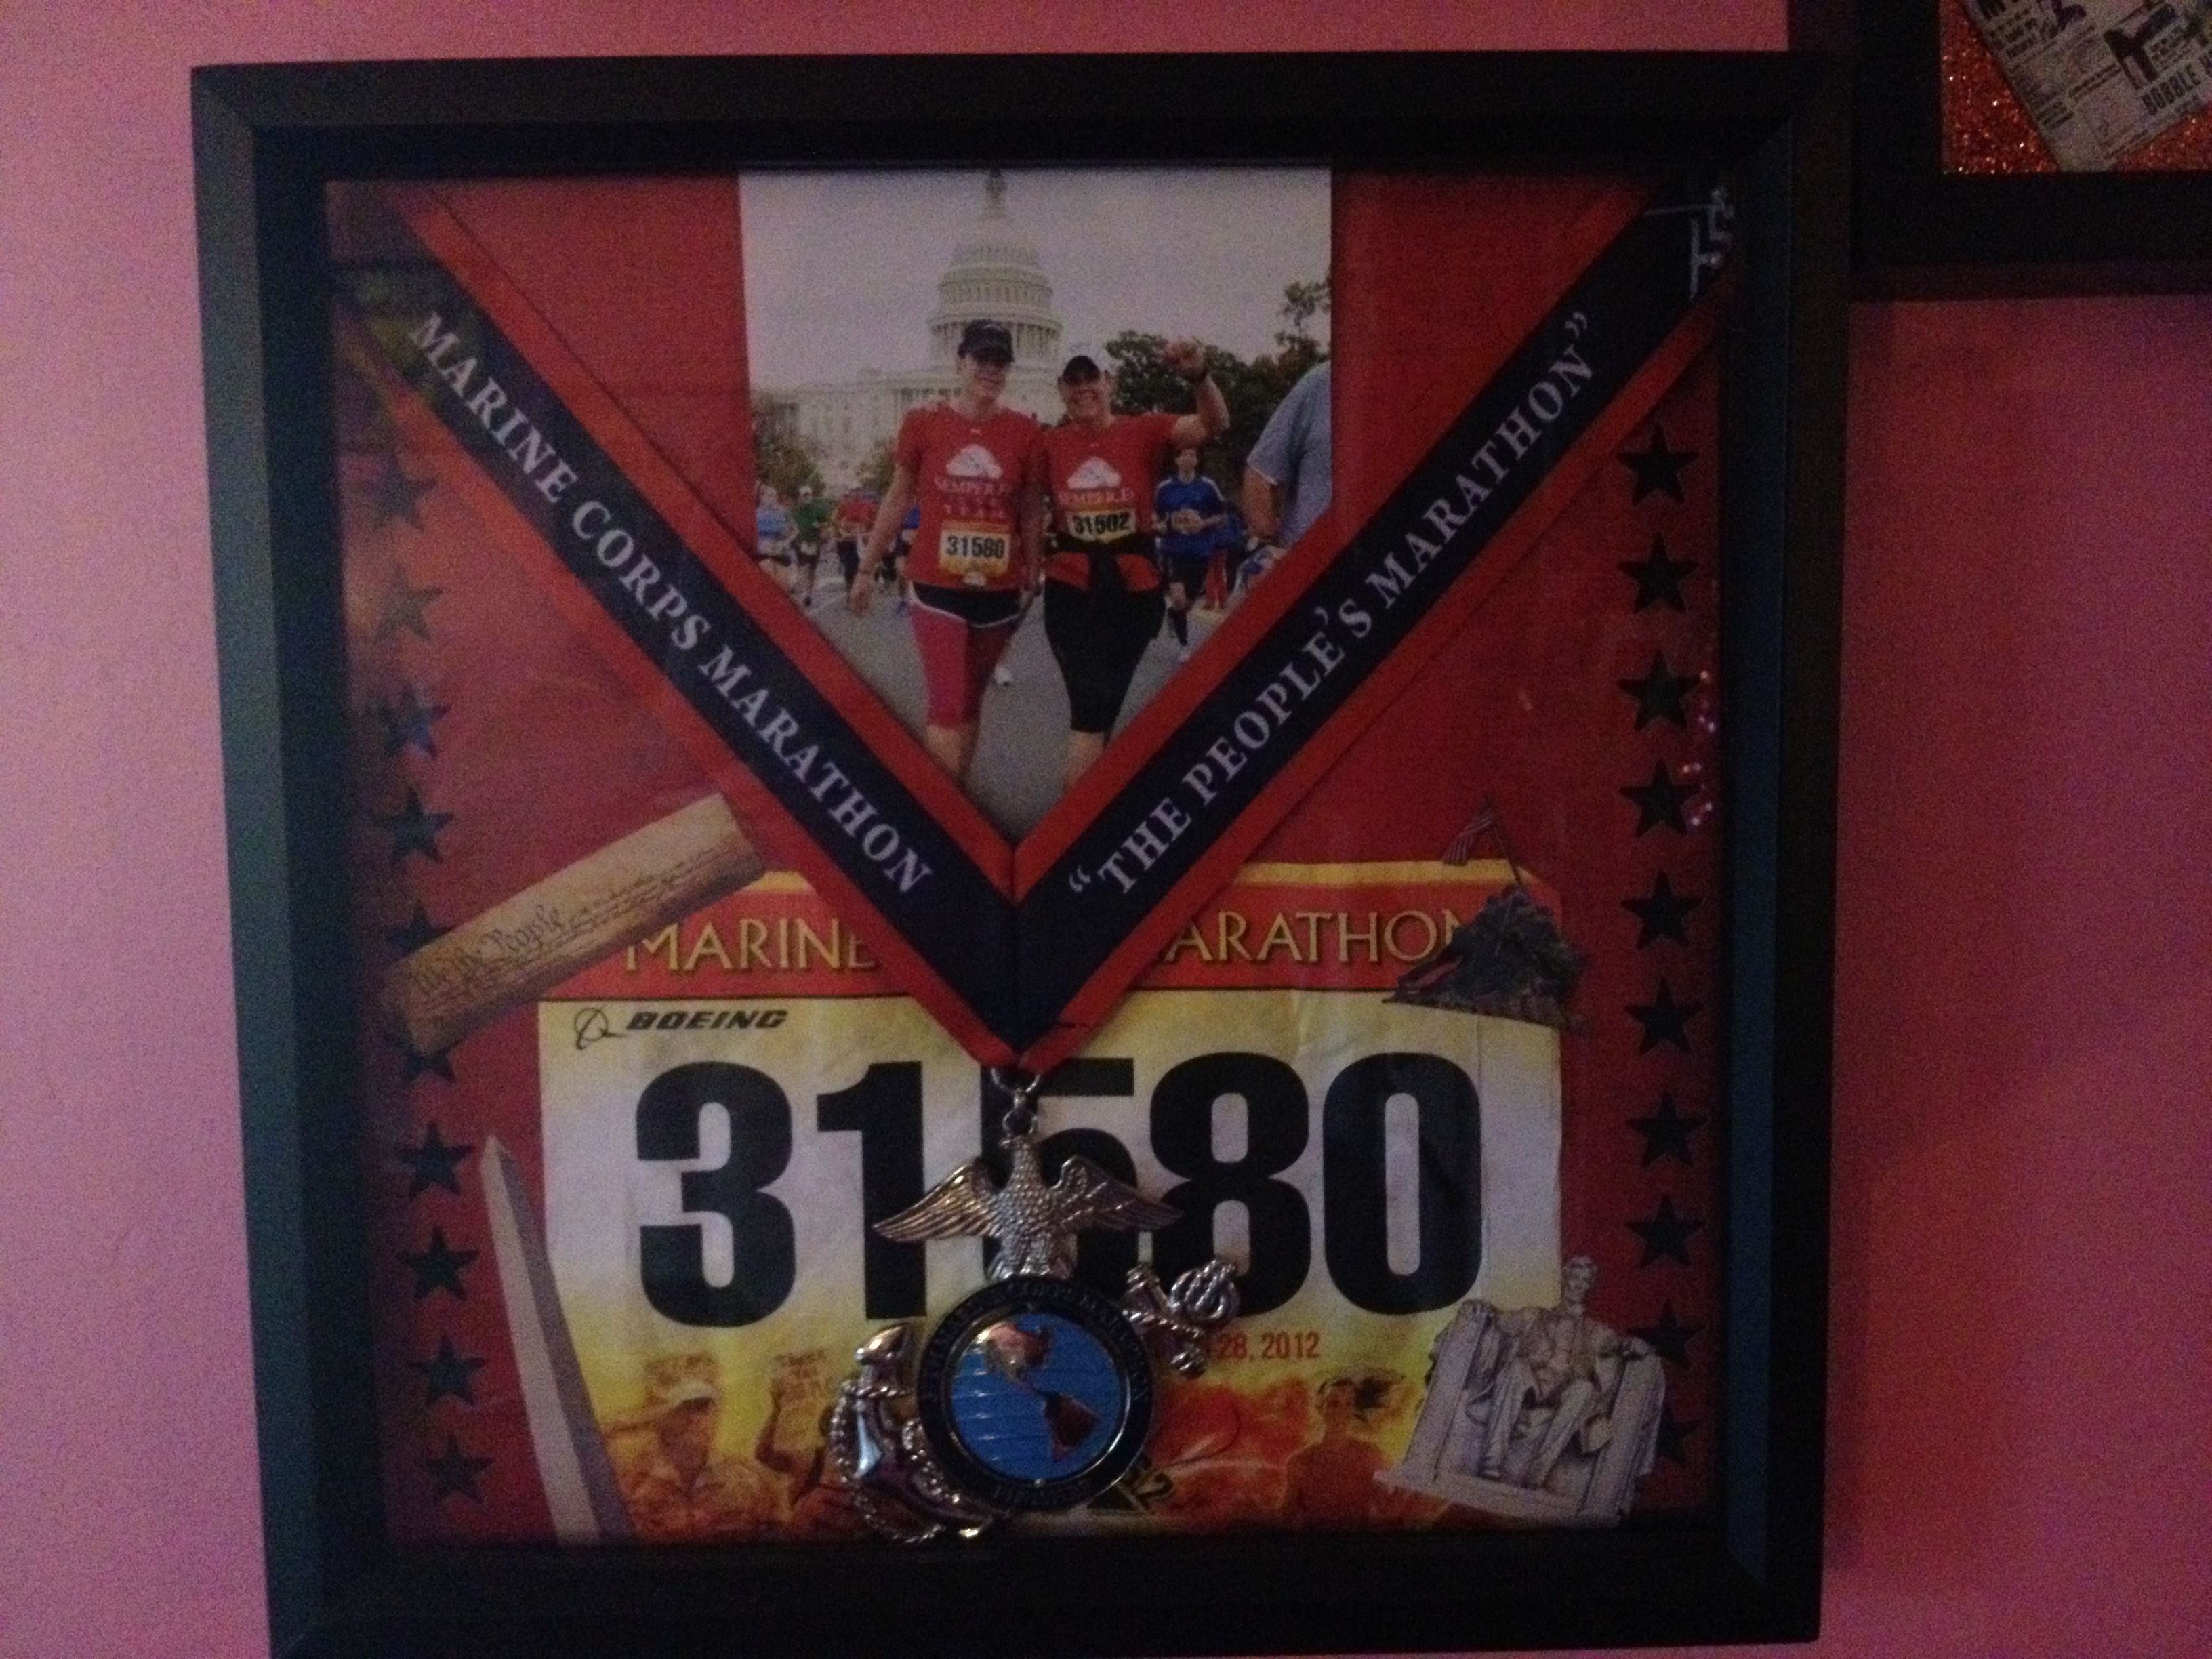 Making Shadow Boxes For Your Race Medals Is A Fun Way To Display Them Running This One Is From The Mar Running Medal Display Race Medal Displays Shadow Box